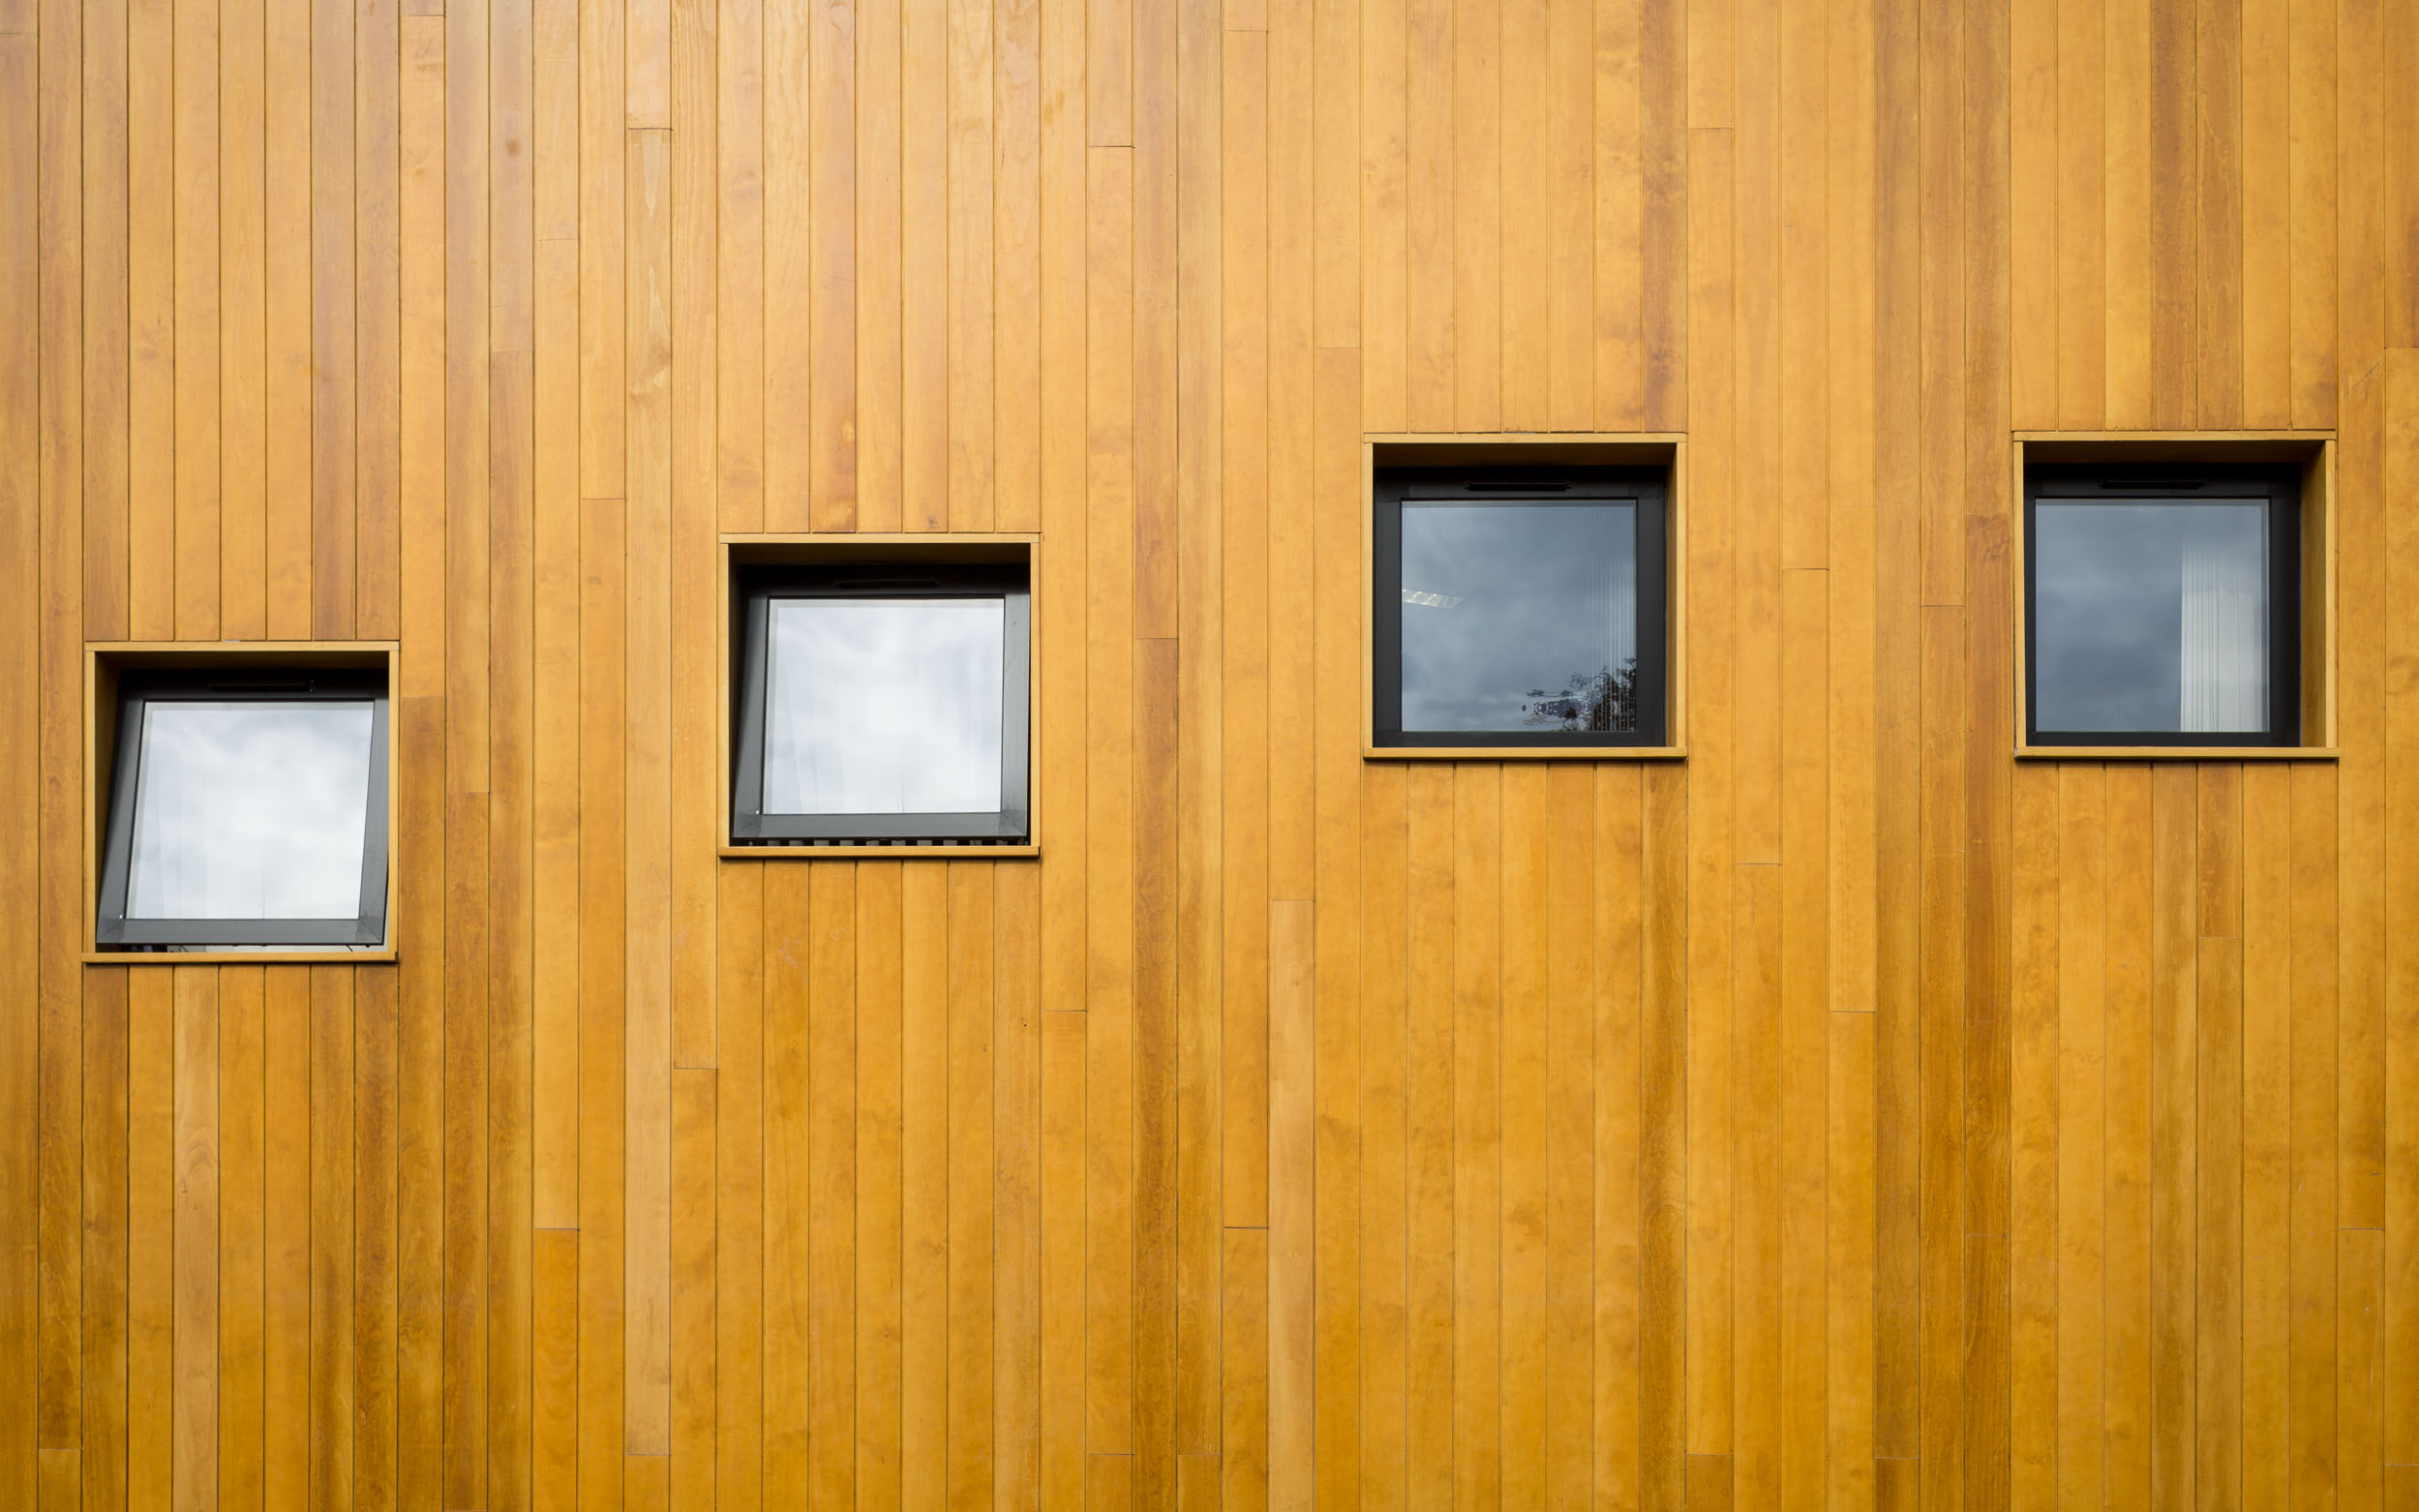 bradford royal infirmary temple bank house new building wooden cladding window detail.jpg